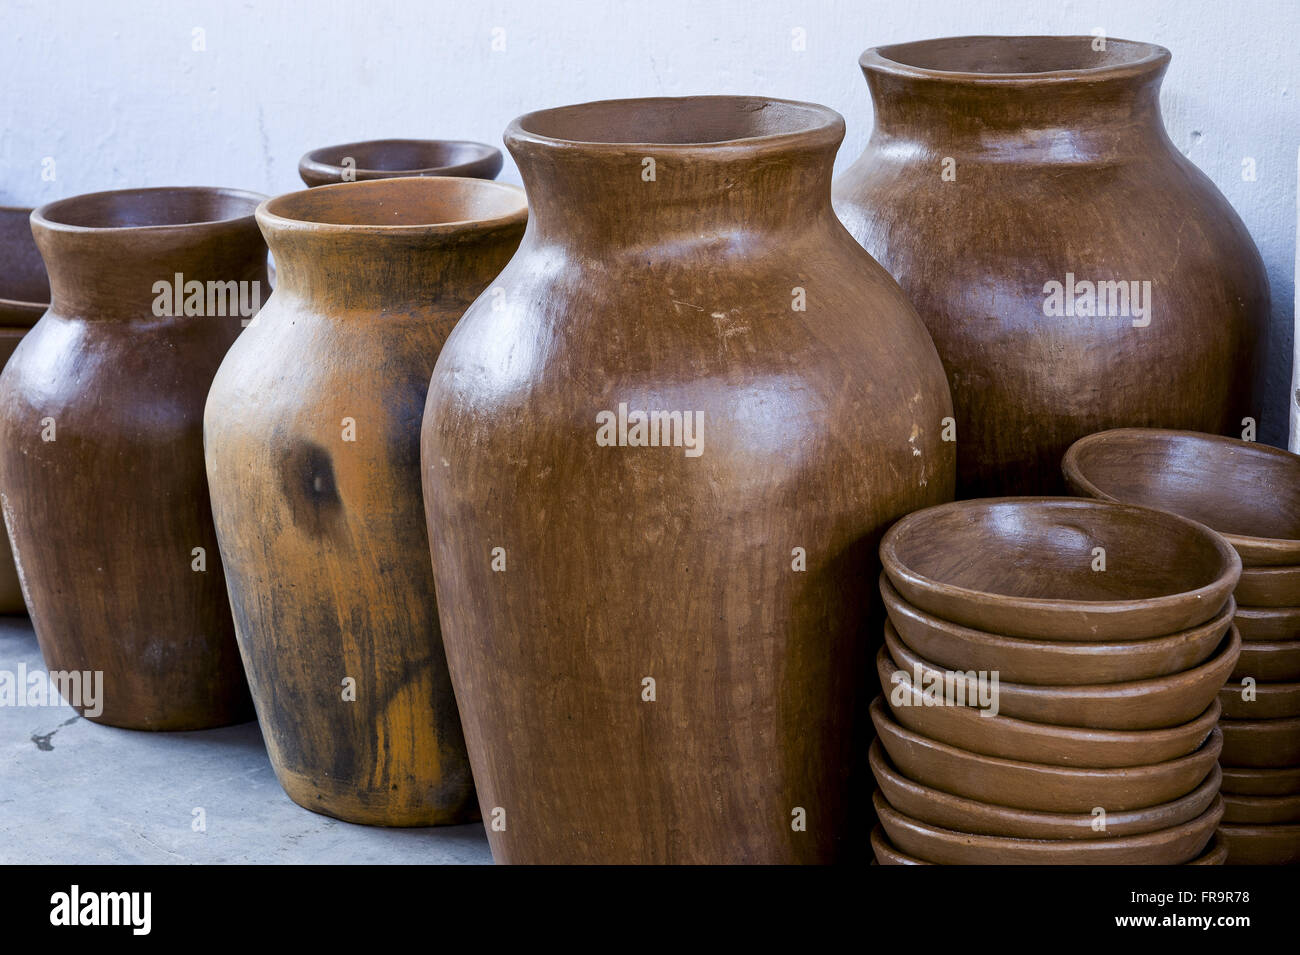 Utilitarian pieces sculpted in clay by Francisco de Lima Caninde - Stock Image